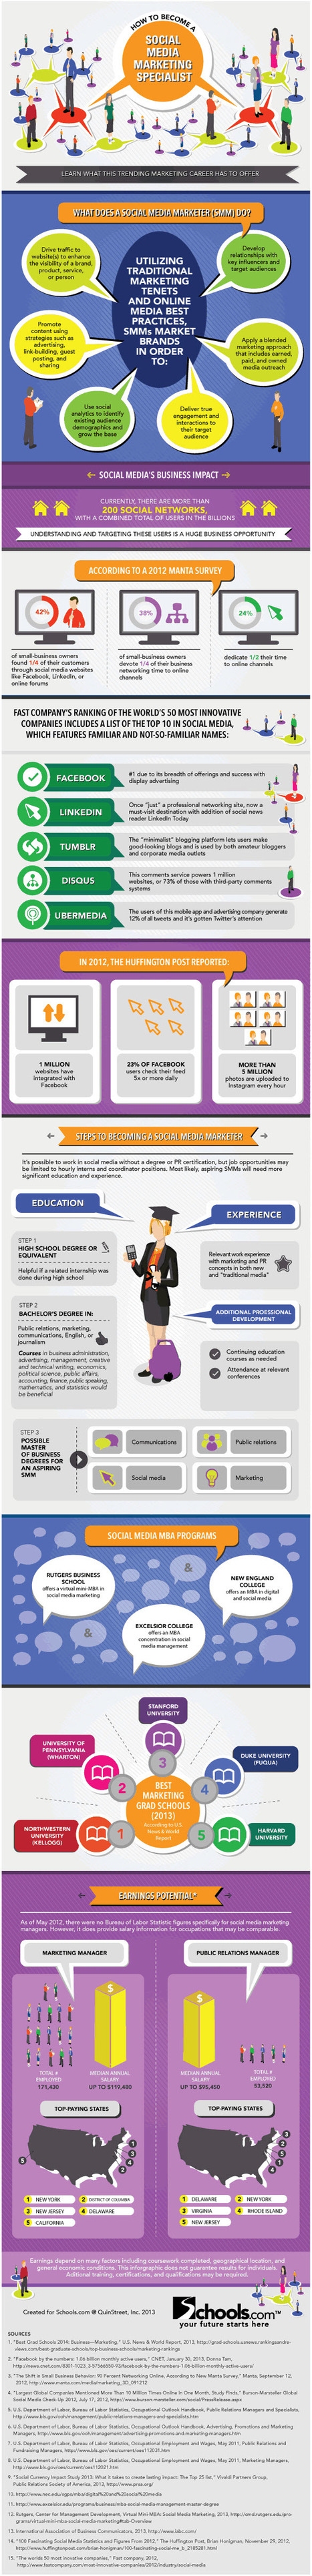 How to Become a Social Media Marketing Expert - Infographic   Viral Classified News   Scoop.it